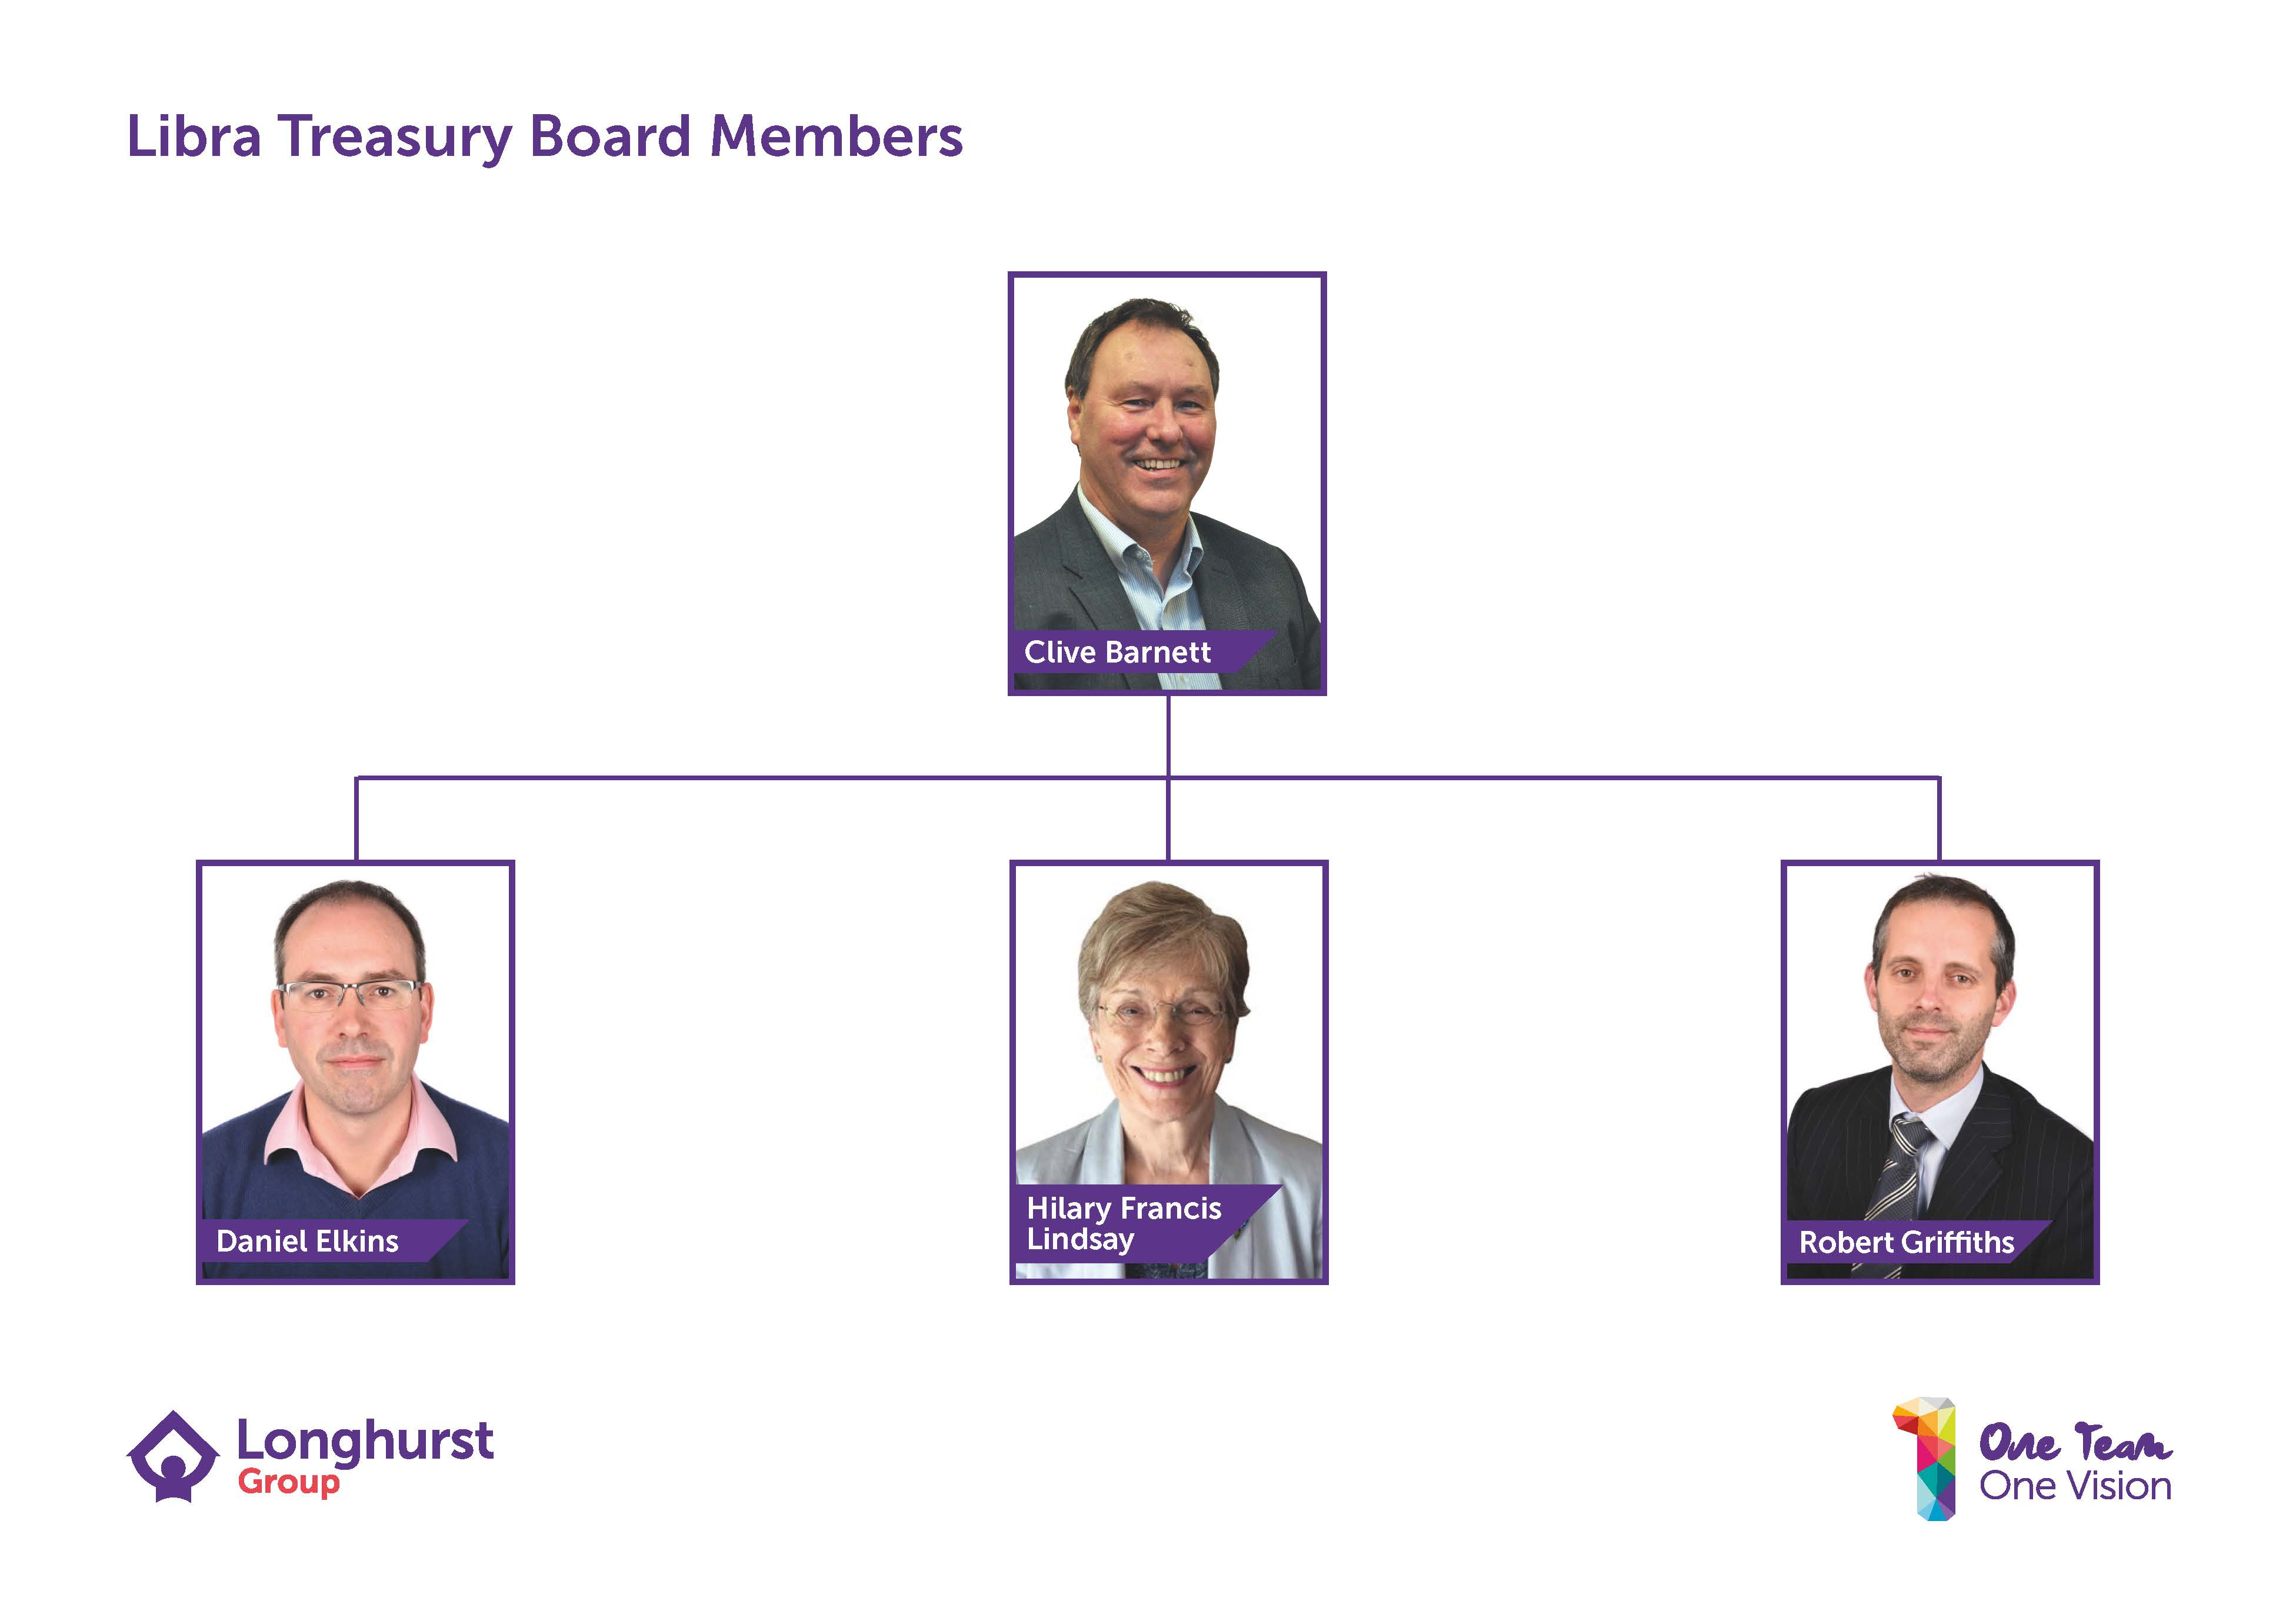 Libra Treasury Board members